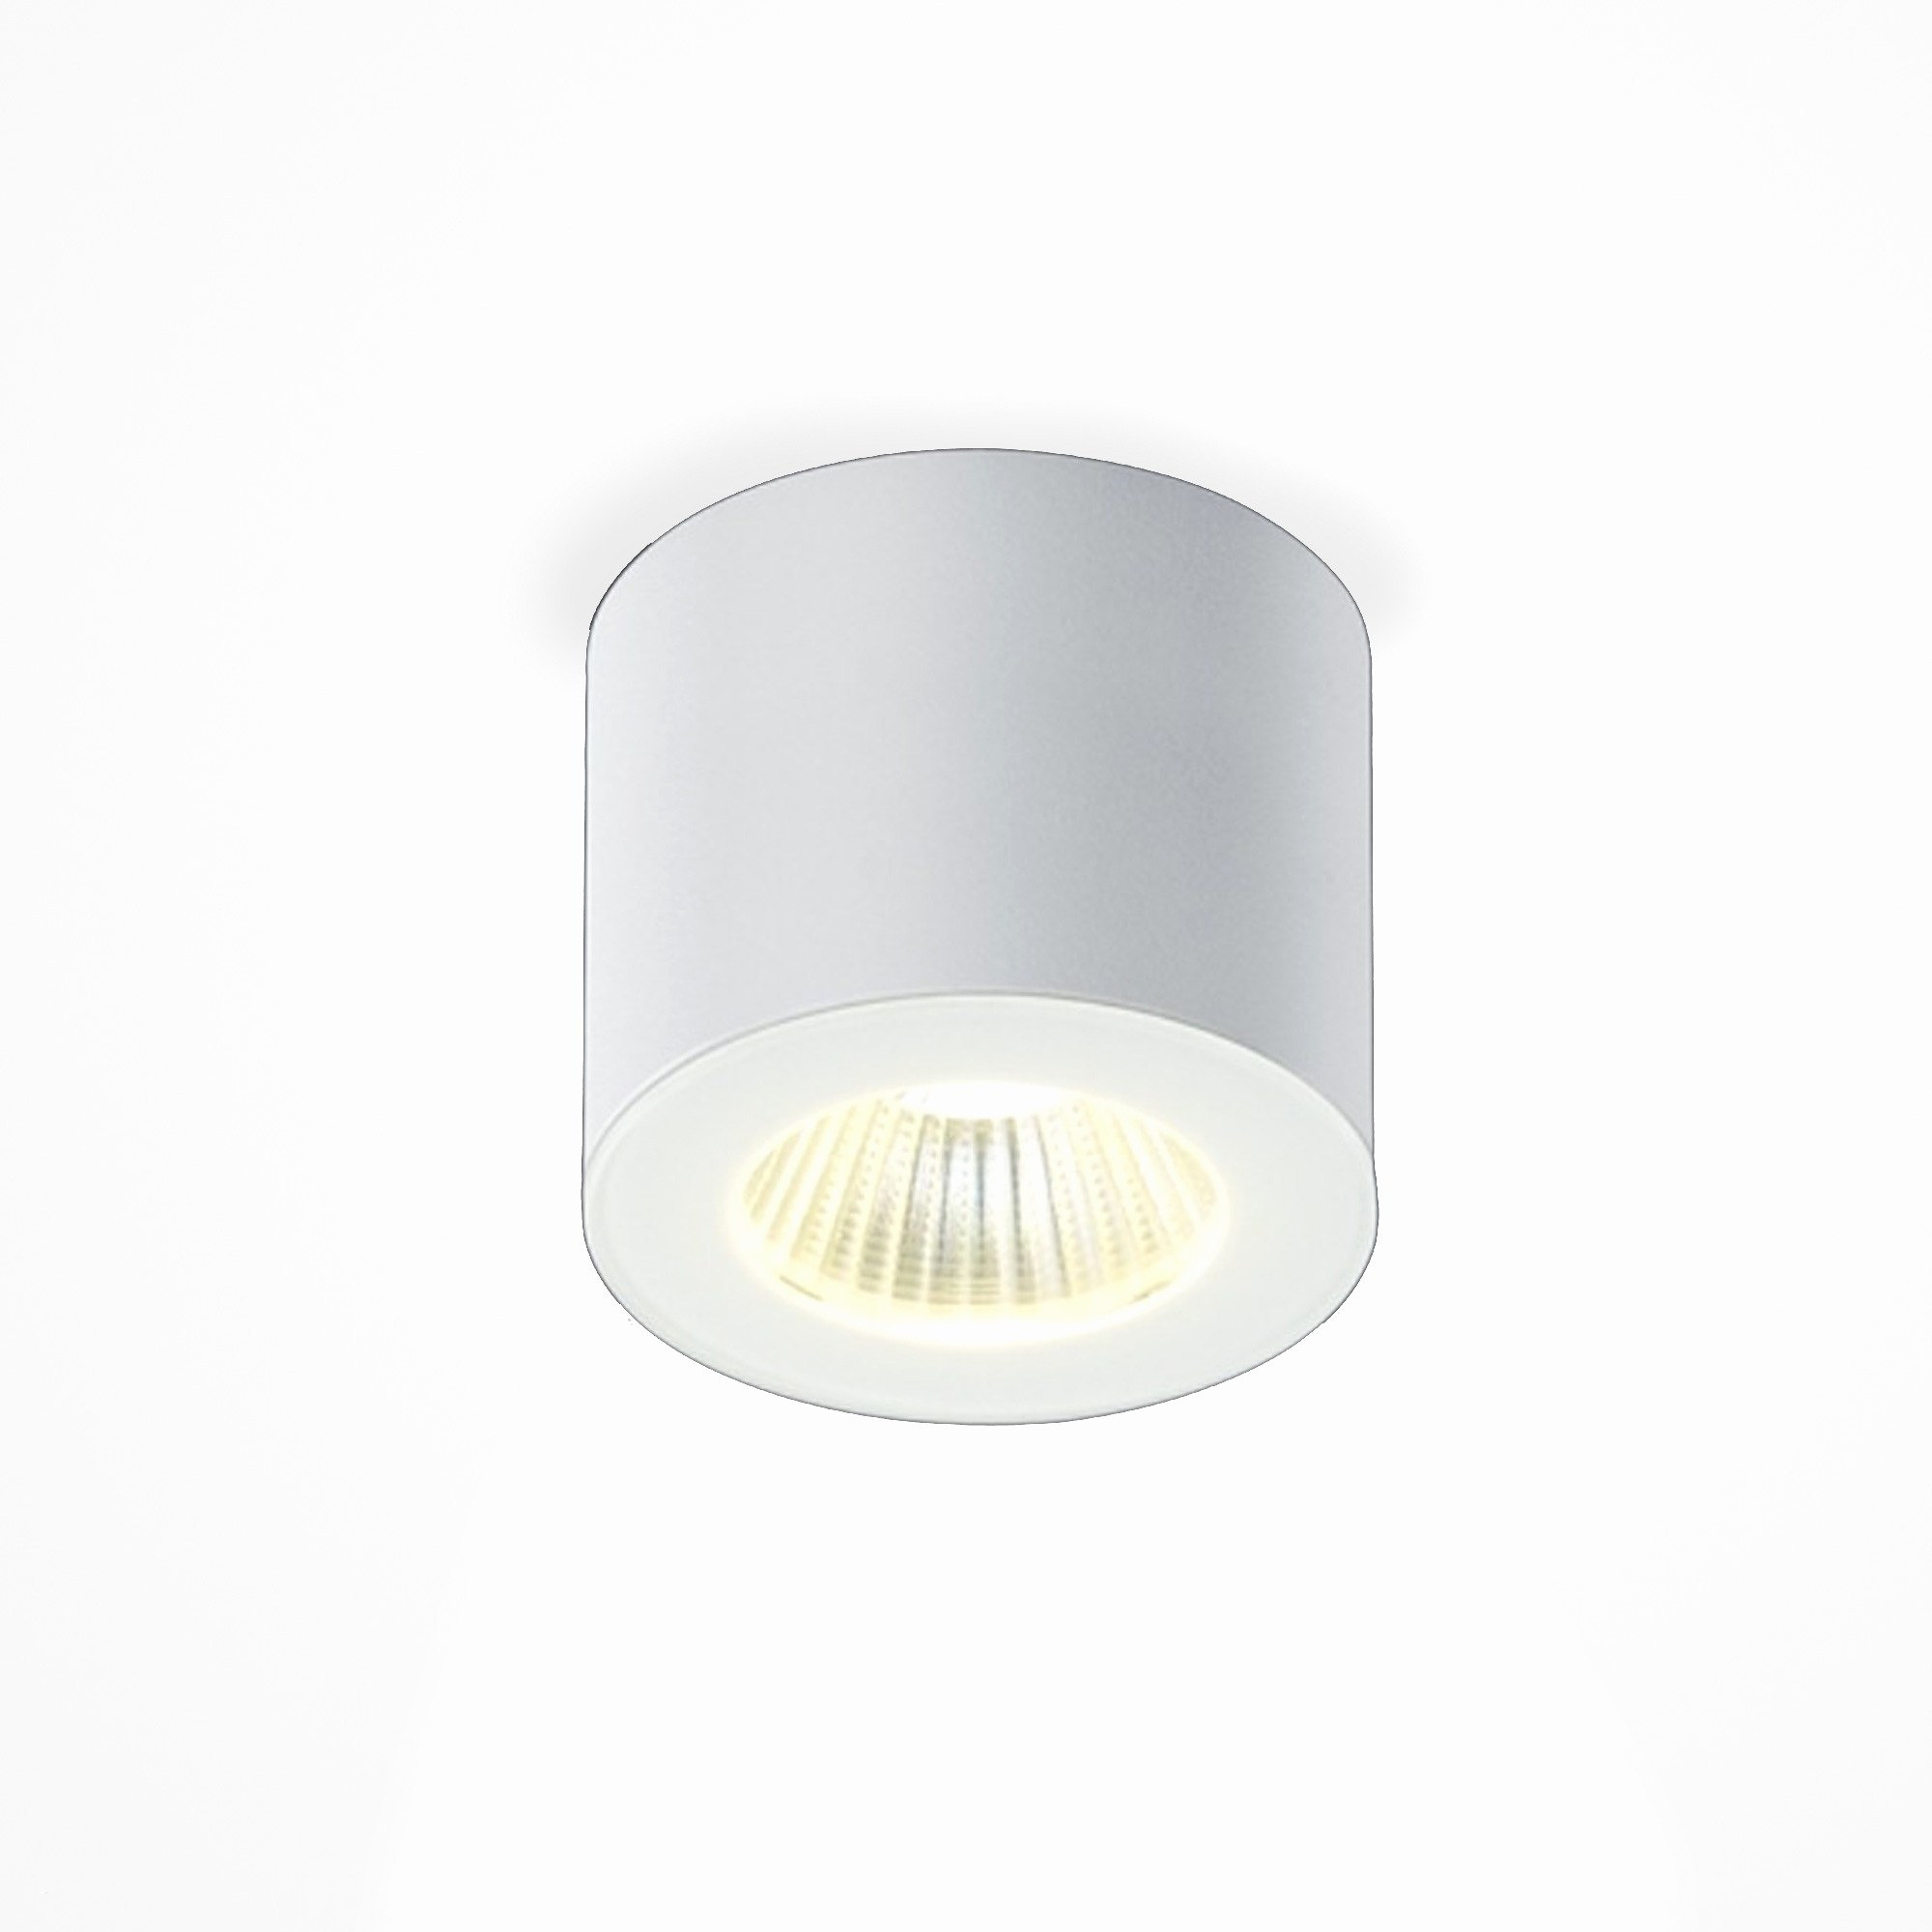 metal wall vase sconce of lovely wall mount sconce metalorgtfo com metalorgtfo com within sconce 0d a· wall mount sconce new amazing led wall mount light metalorgtfo